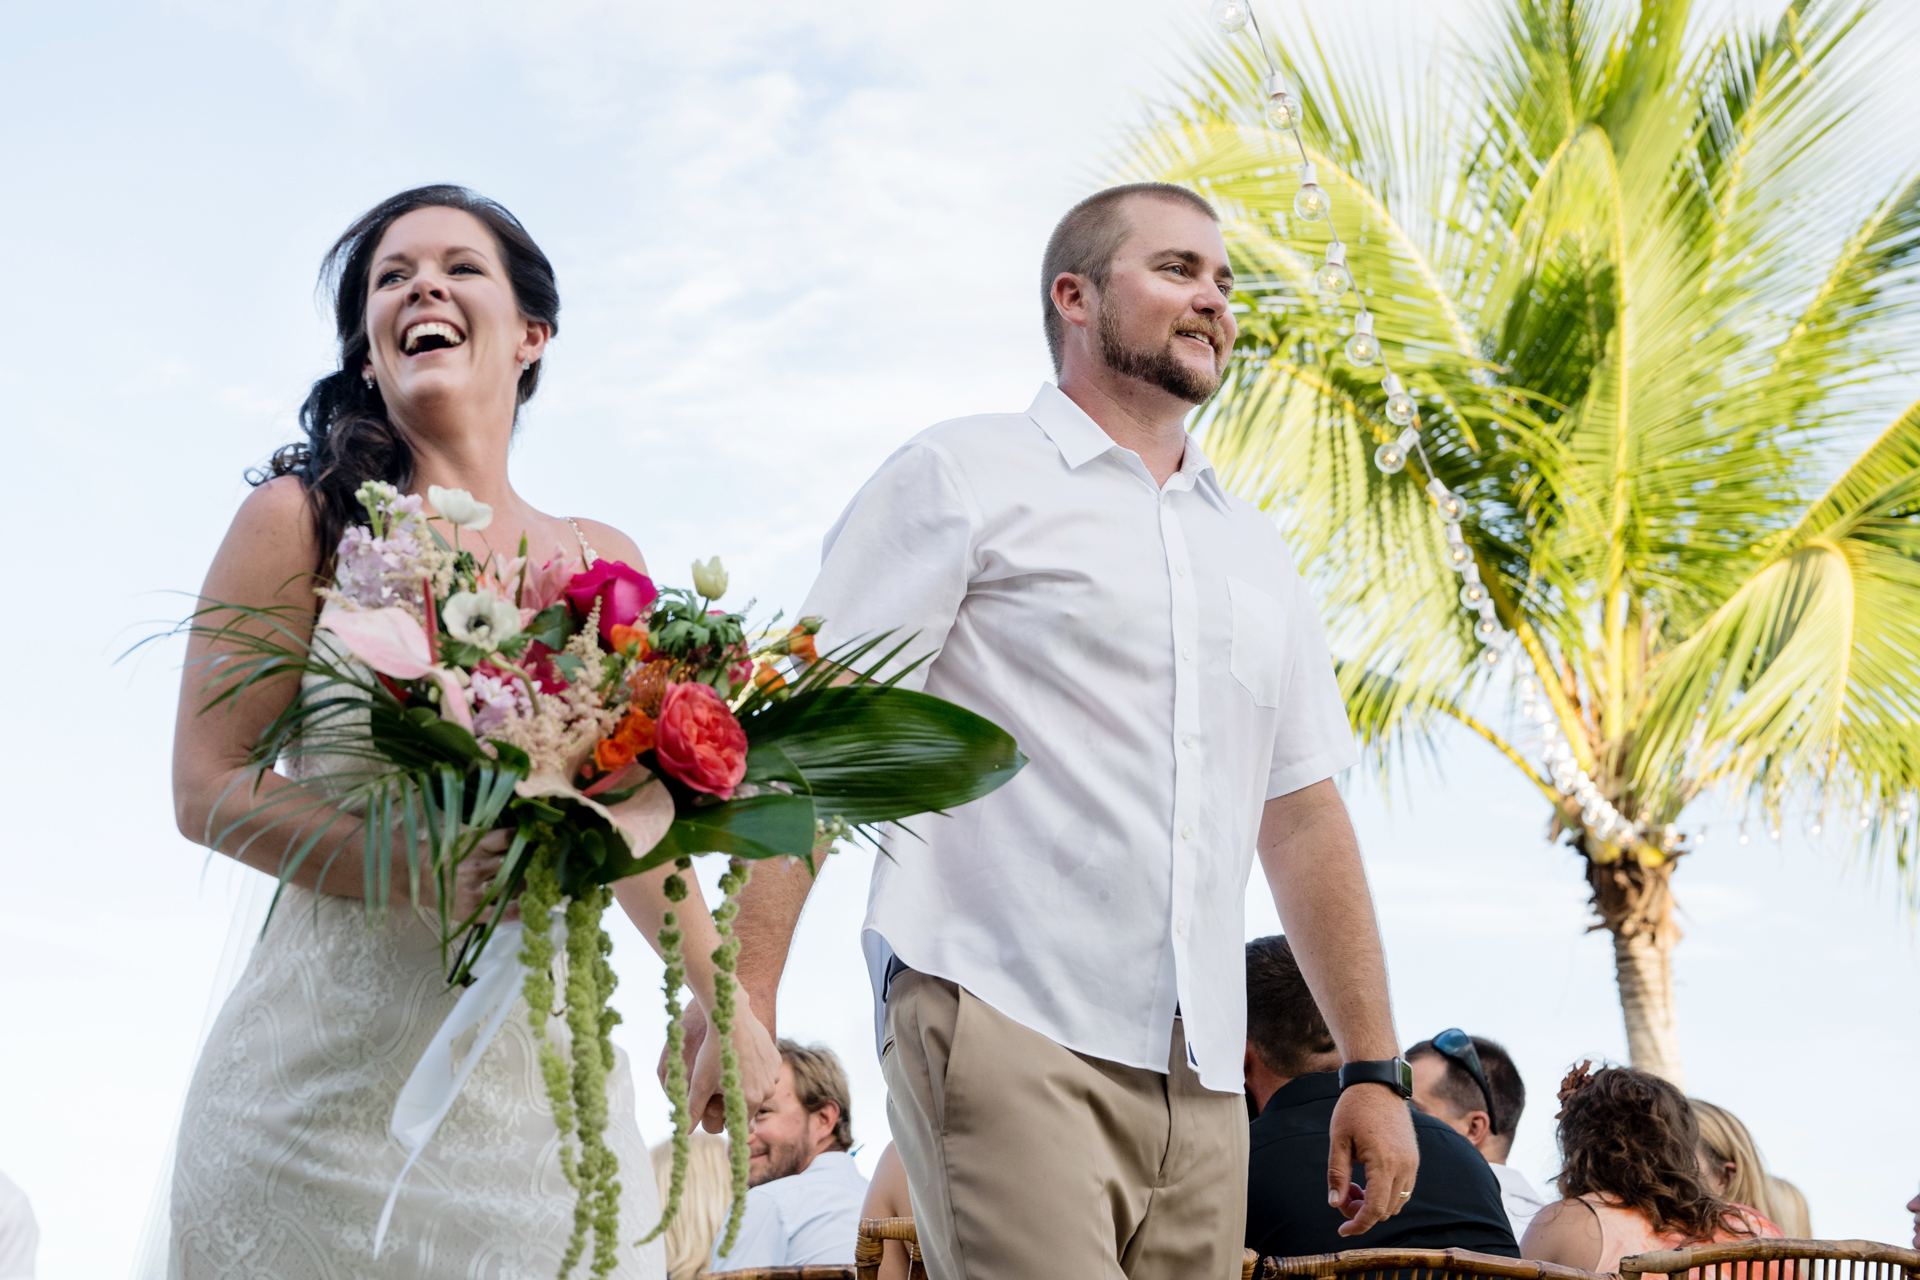 Outdoor FL Beach Wedding Ceremony Photography | Hand in hand, the newlyweds walk down the aisle